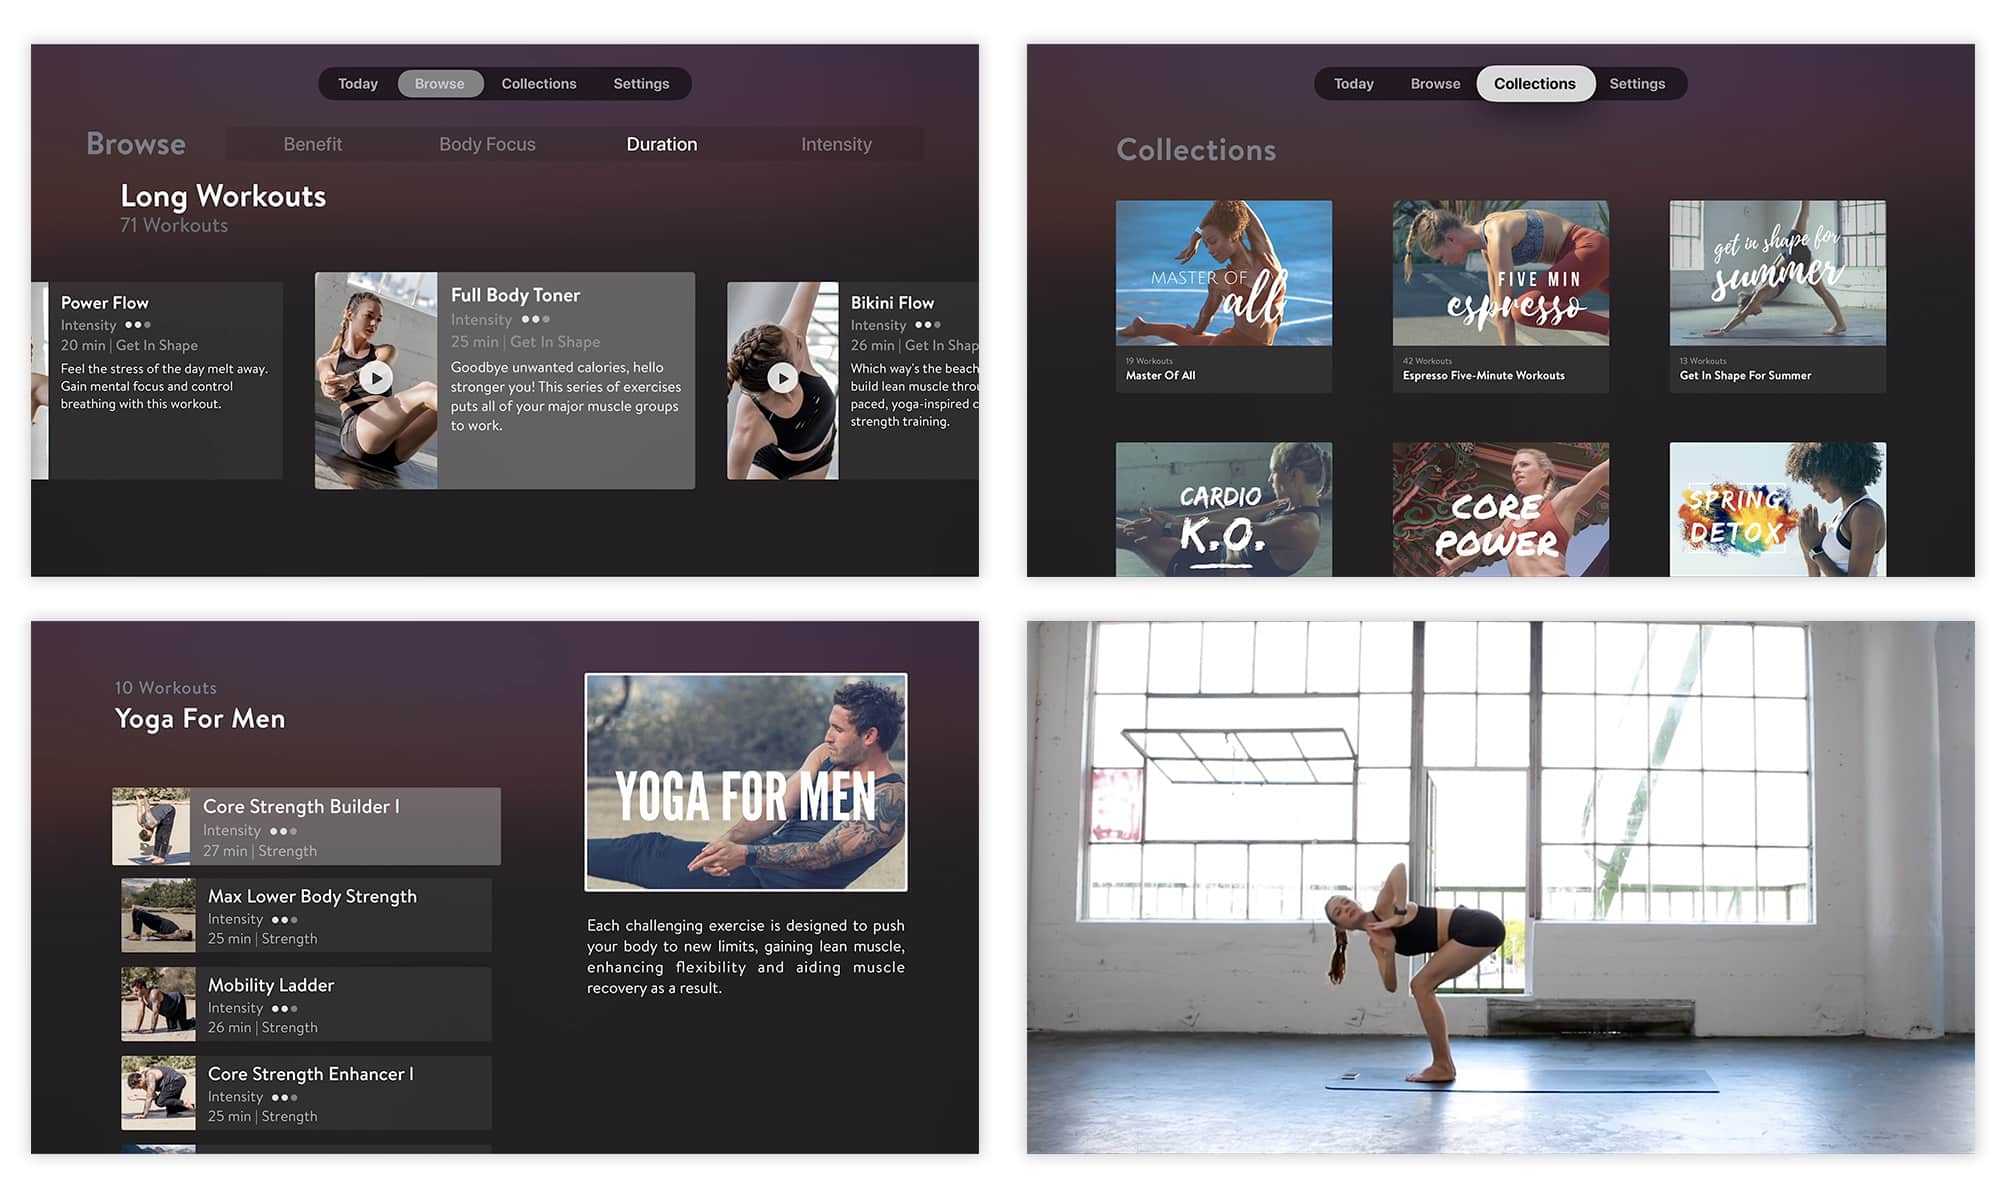 Asana Rebel offers a sumptuous range of workout videos.